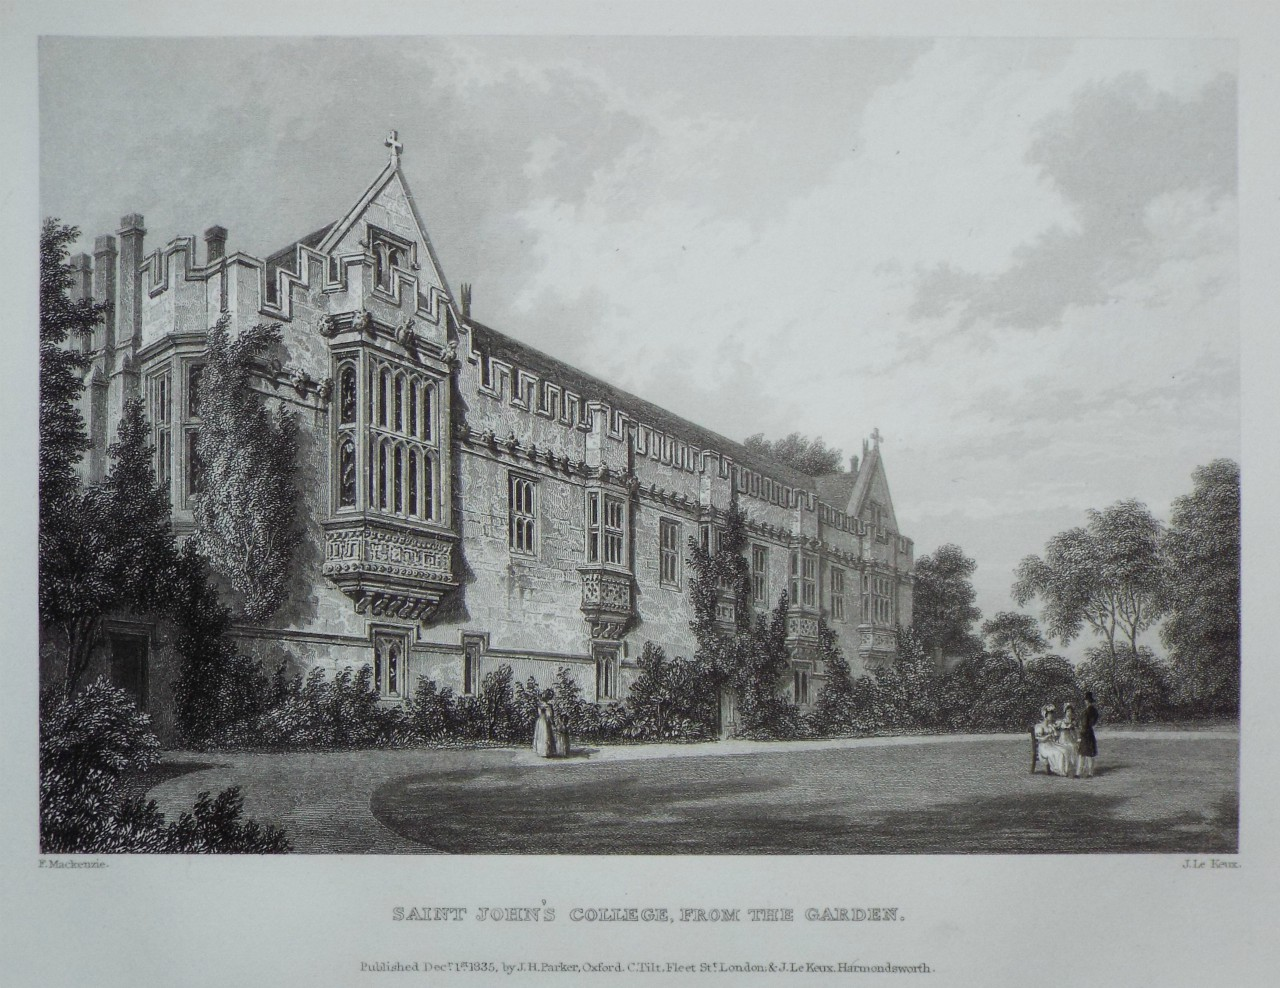 Print - Saint John's College, from the Garden. - Le